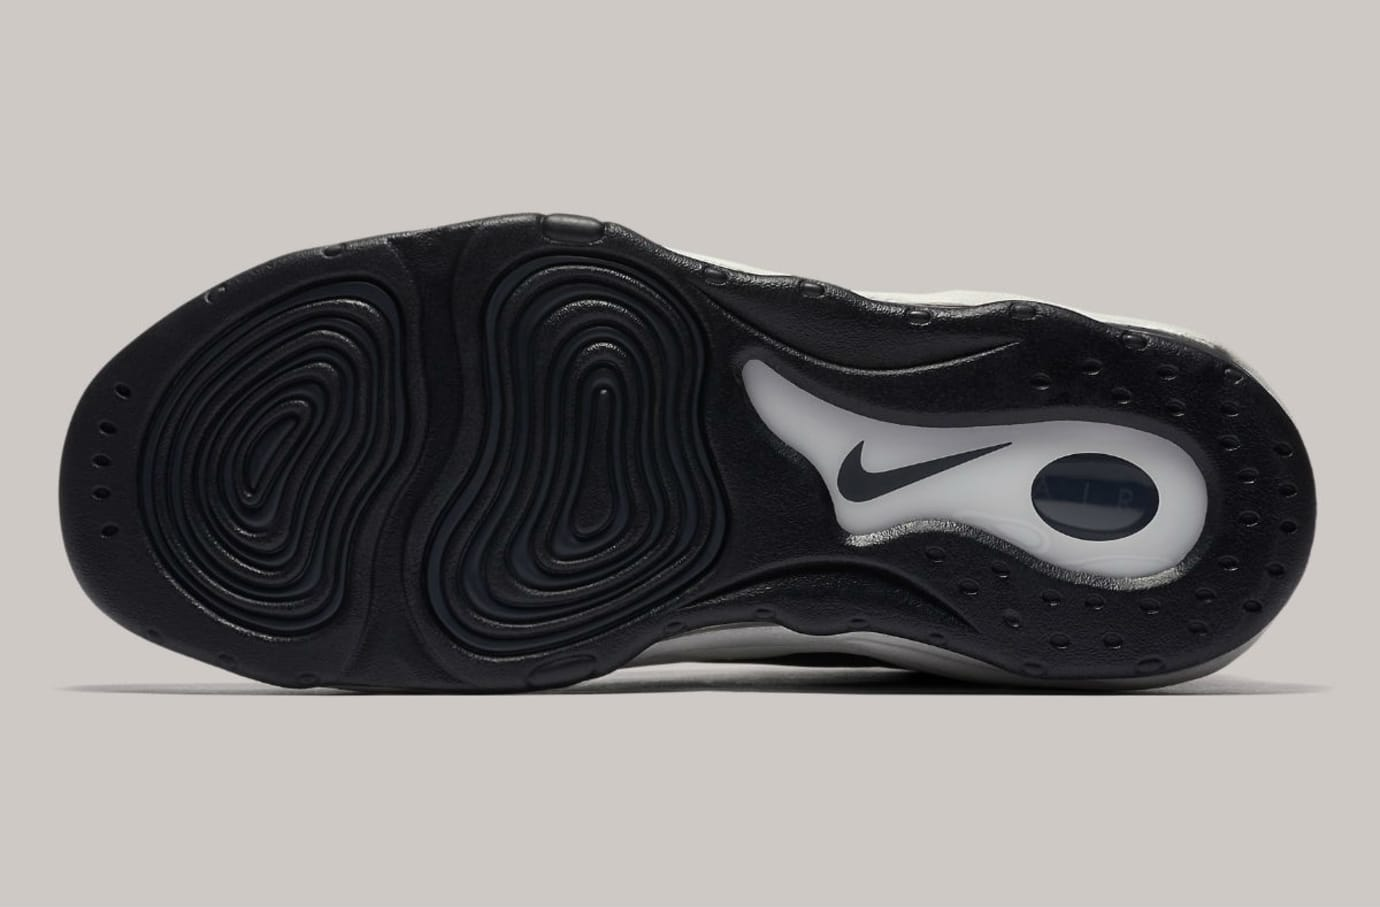 Nike Air Pippen Black Anthracite Vast Grey Release Date 325001-004 Sole